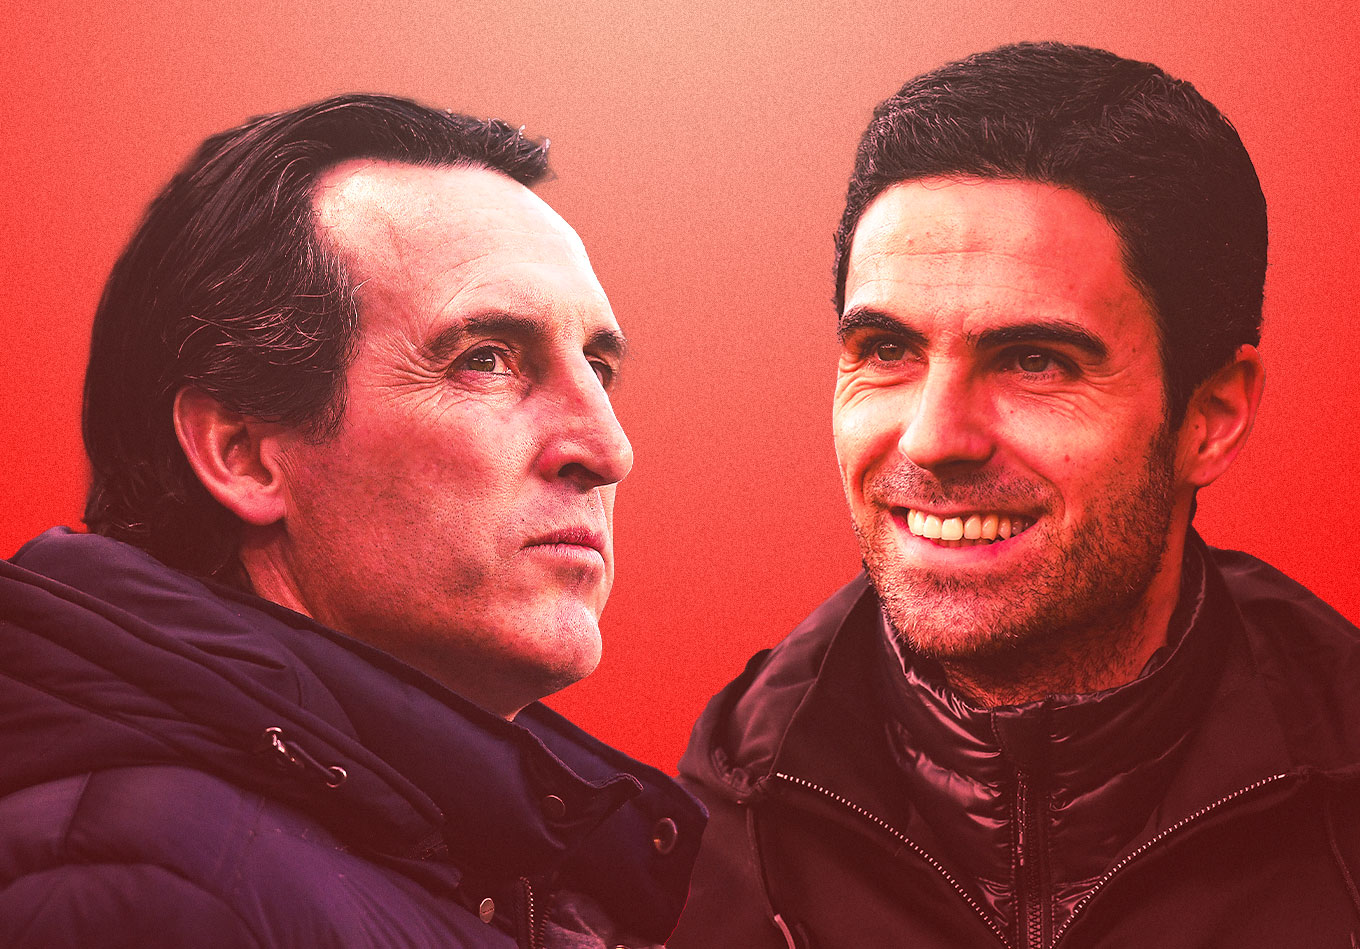 Emery v. Arteta: Comparing Wenger's Two Successors | The Analyst